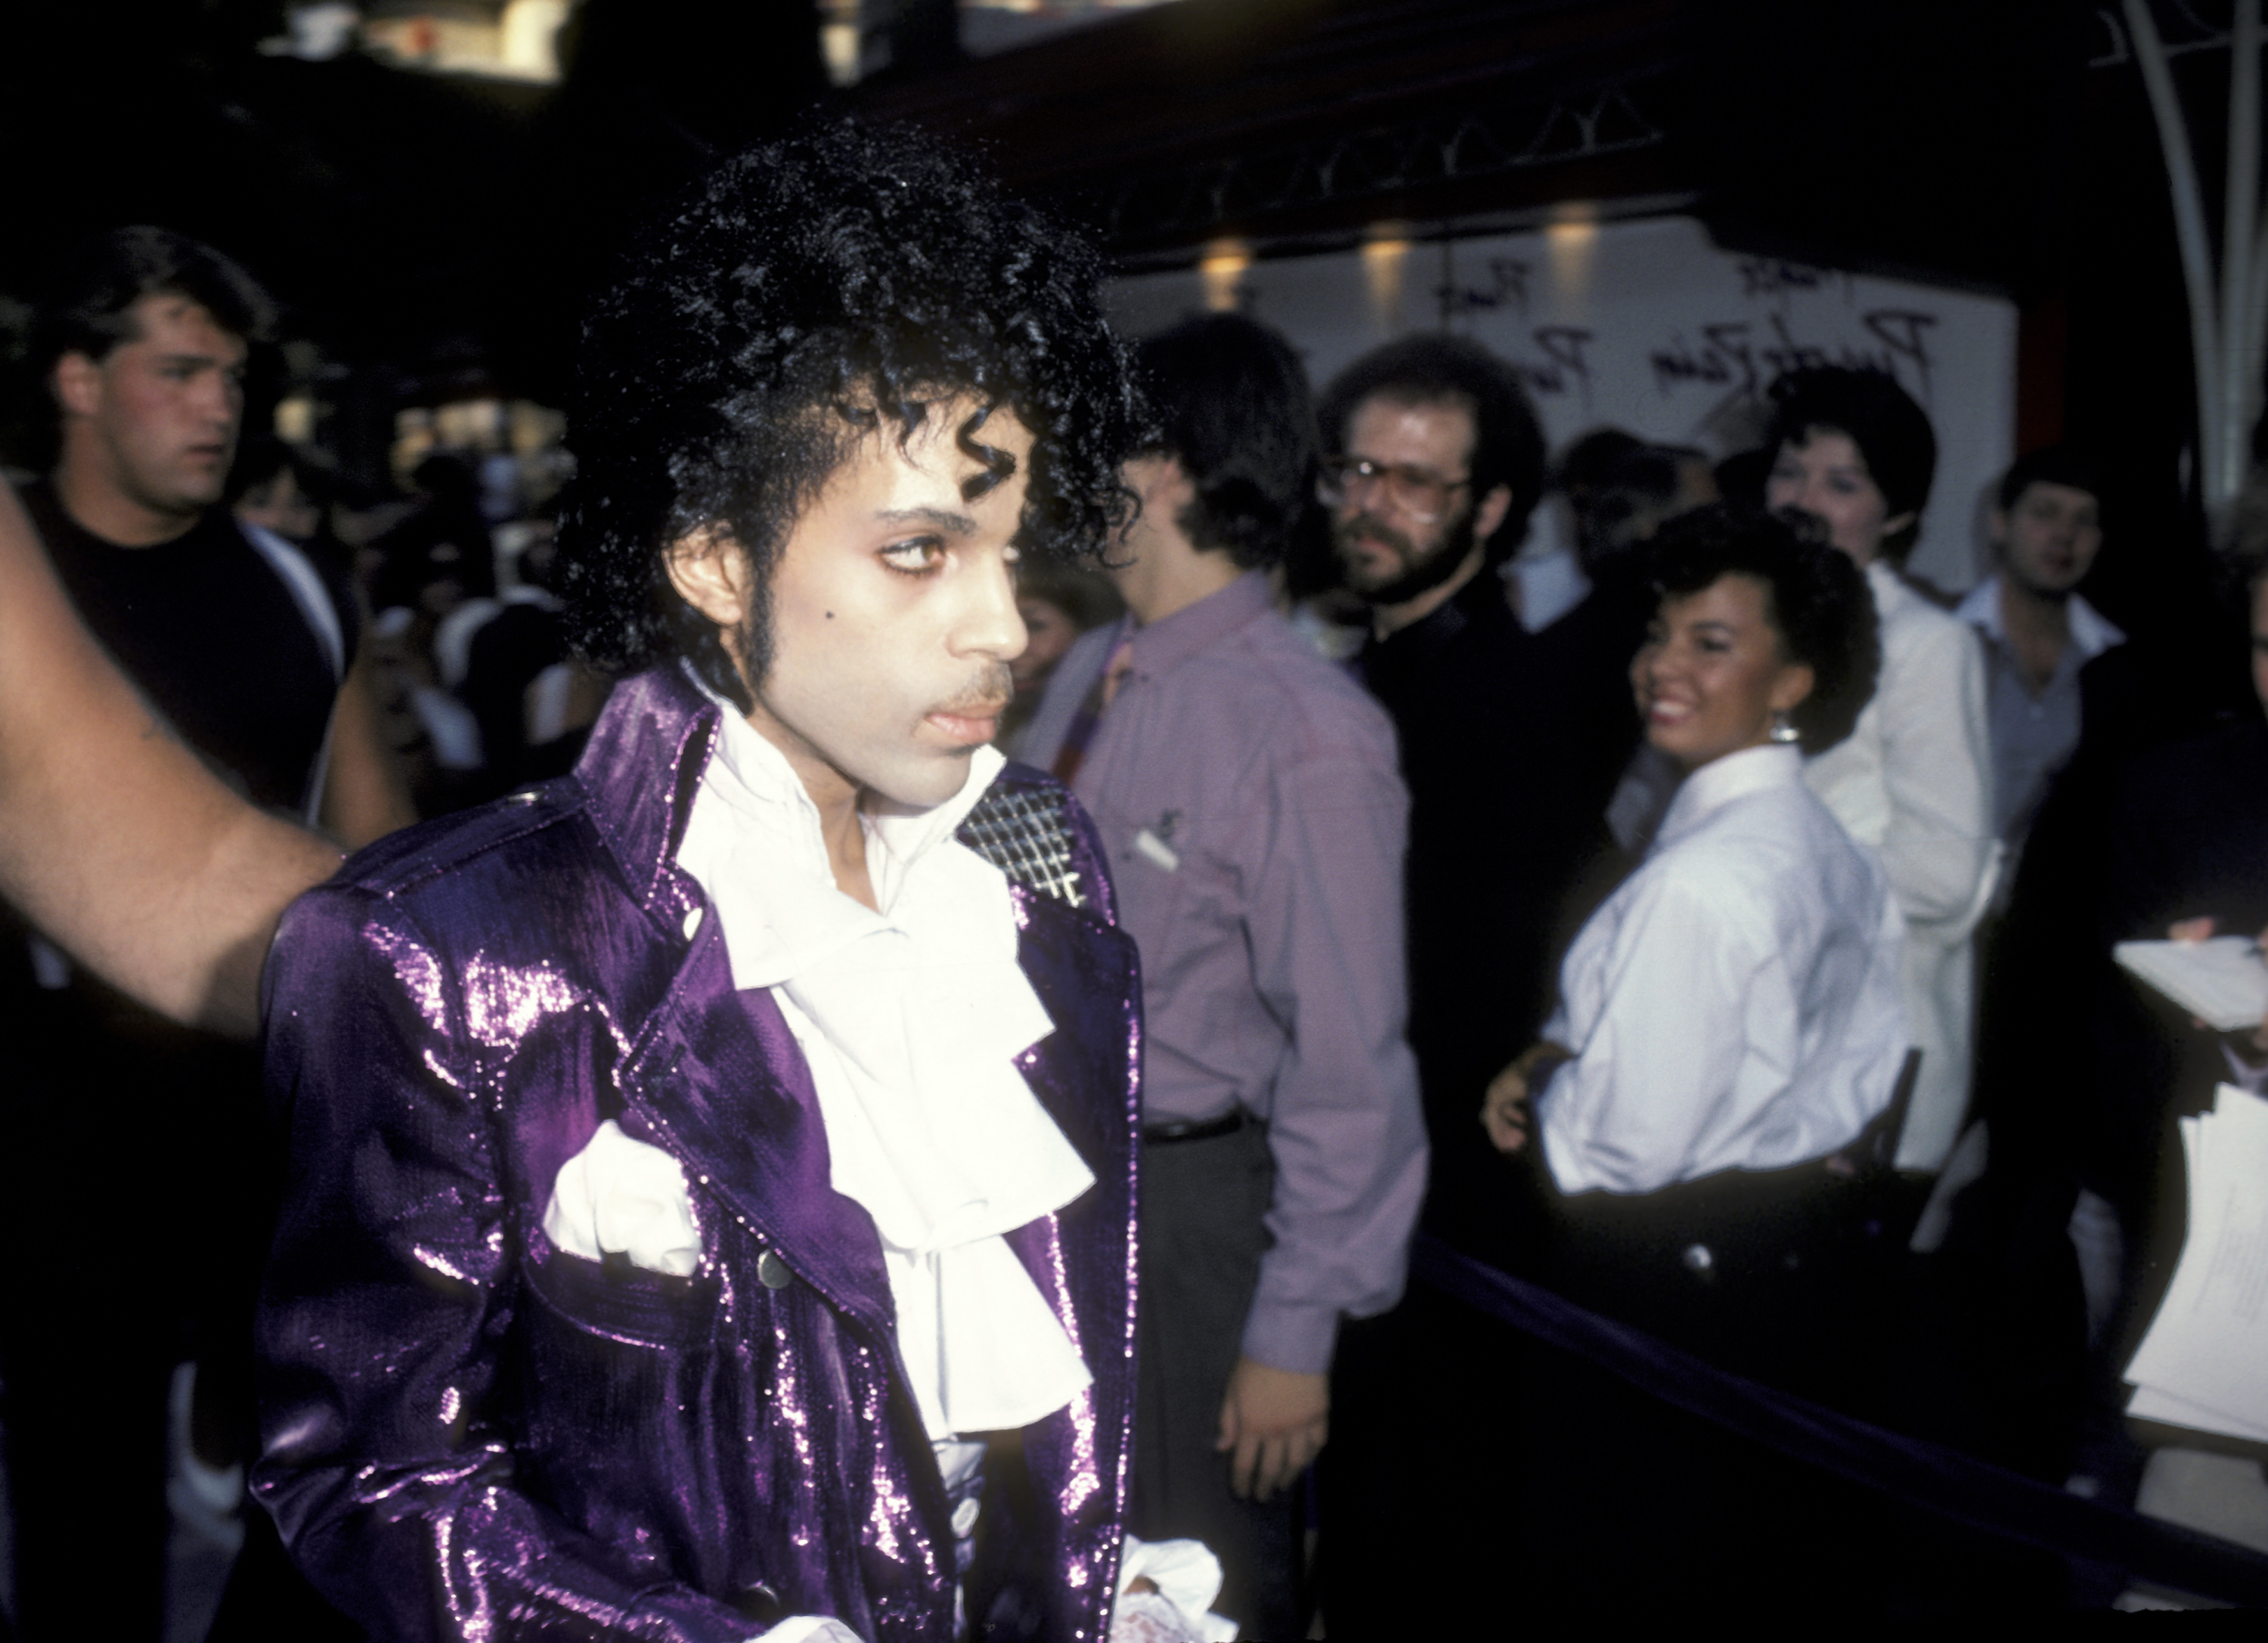 HOLLYWOOD - JULY 26: Musician Prince attending the premiere of 'Purple Rain' on July 26, 1984 at Mann Chinese Theater in Hollywood, California. (Photo by Ron Galella, Ltd./WireImage)